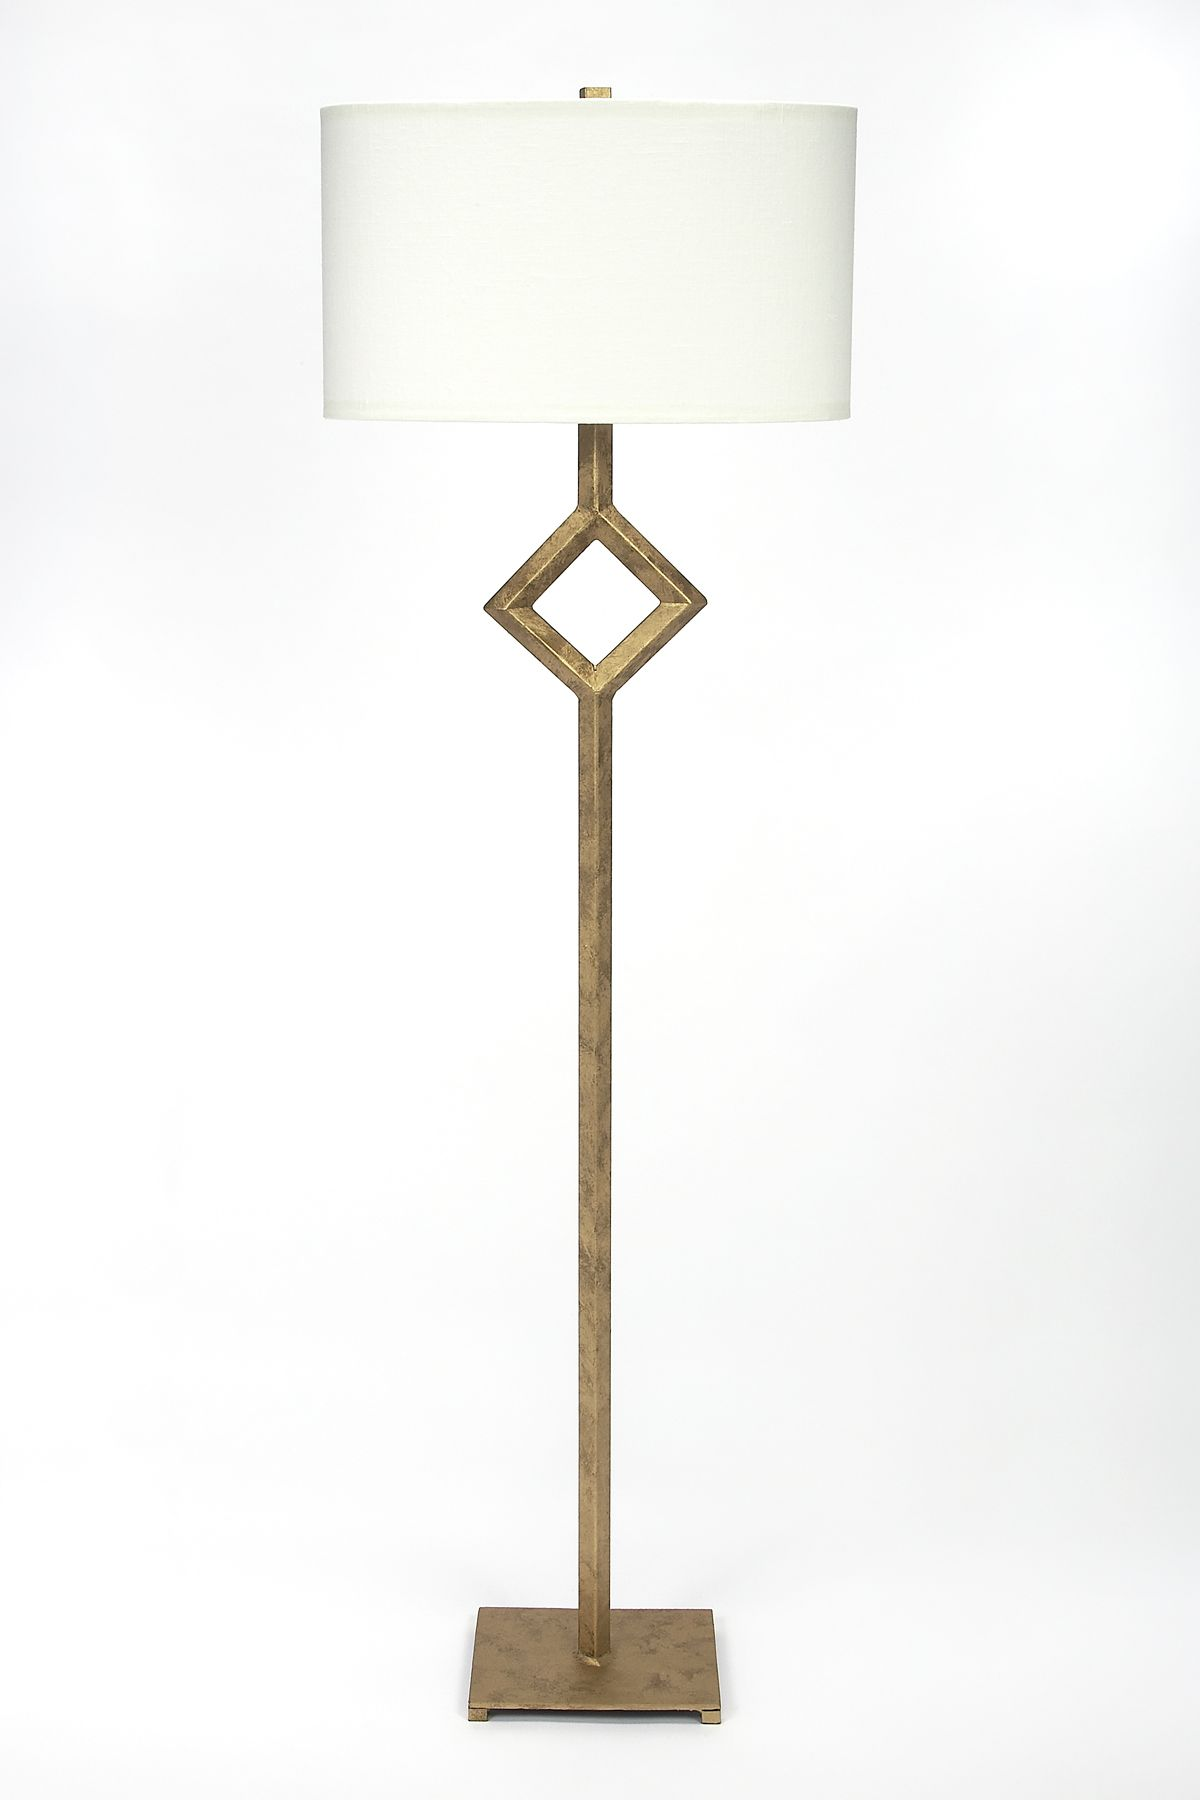 Lacefield for Gallery Designs CL303 floor l&  sc 1 st  Pinterest & Lacefield for Gallery Designs CL303 floor lamp | Lighting | Pinterest